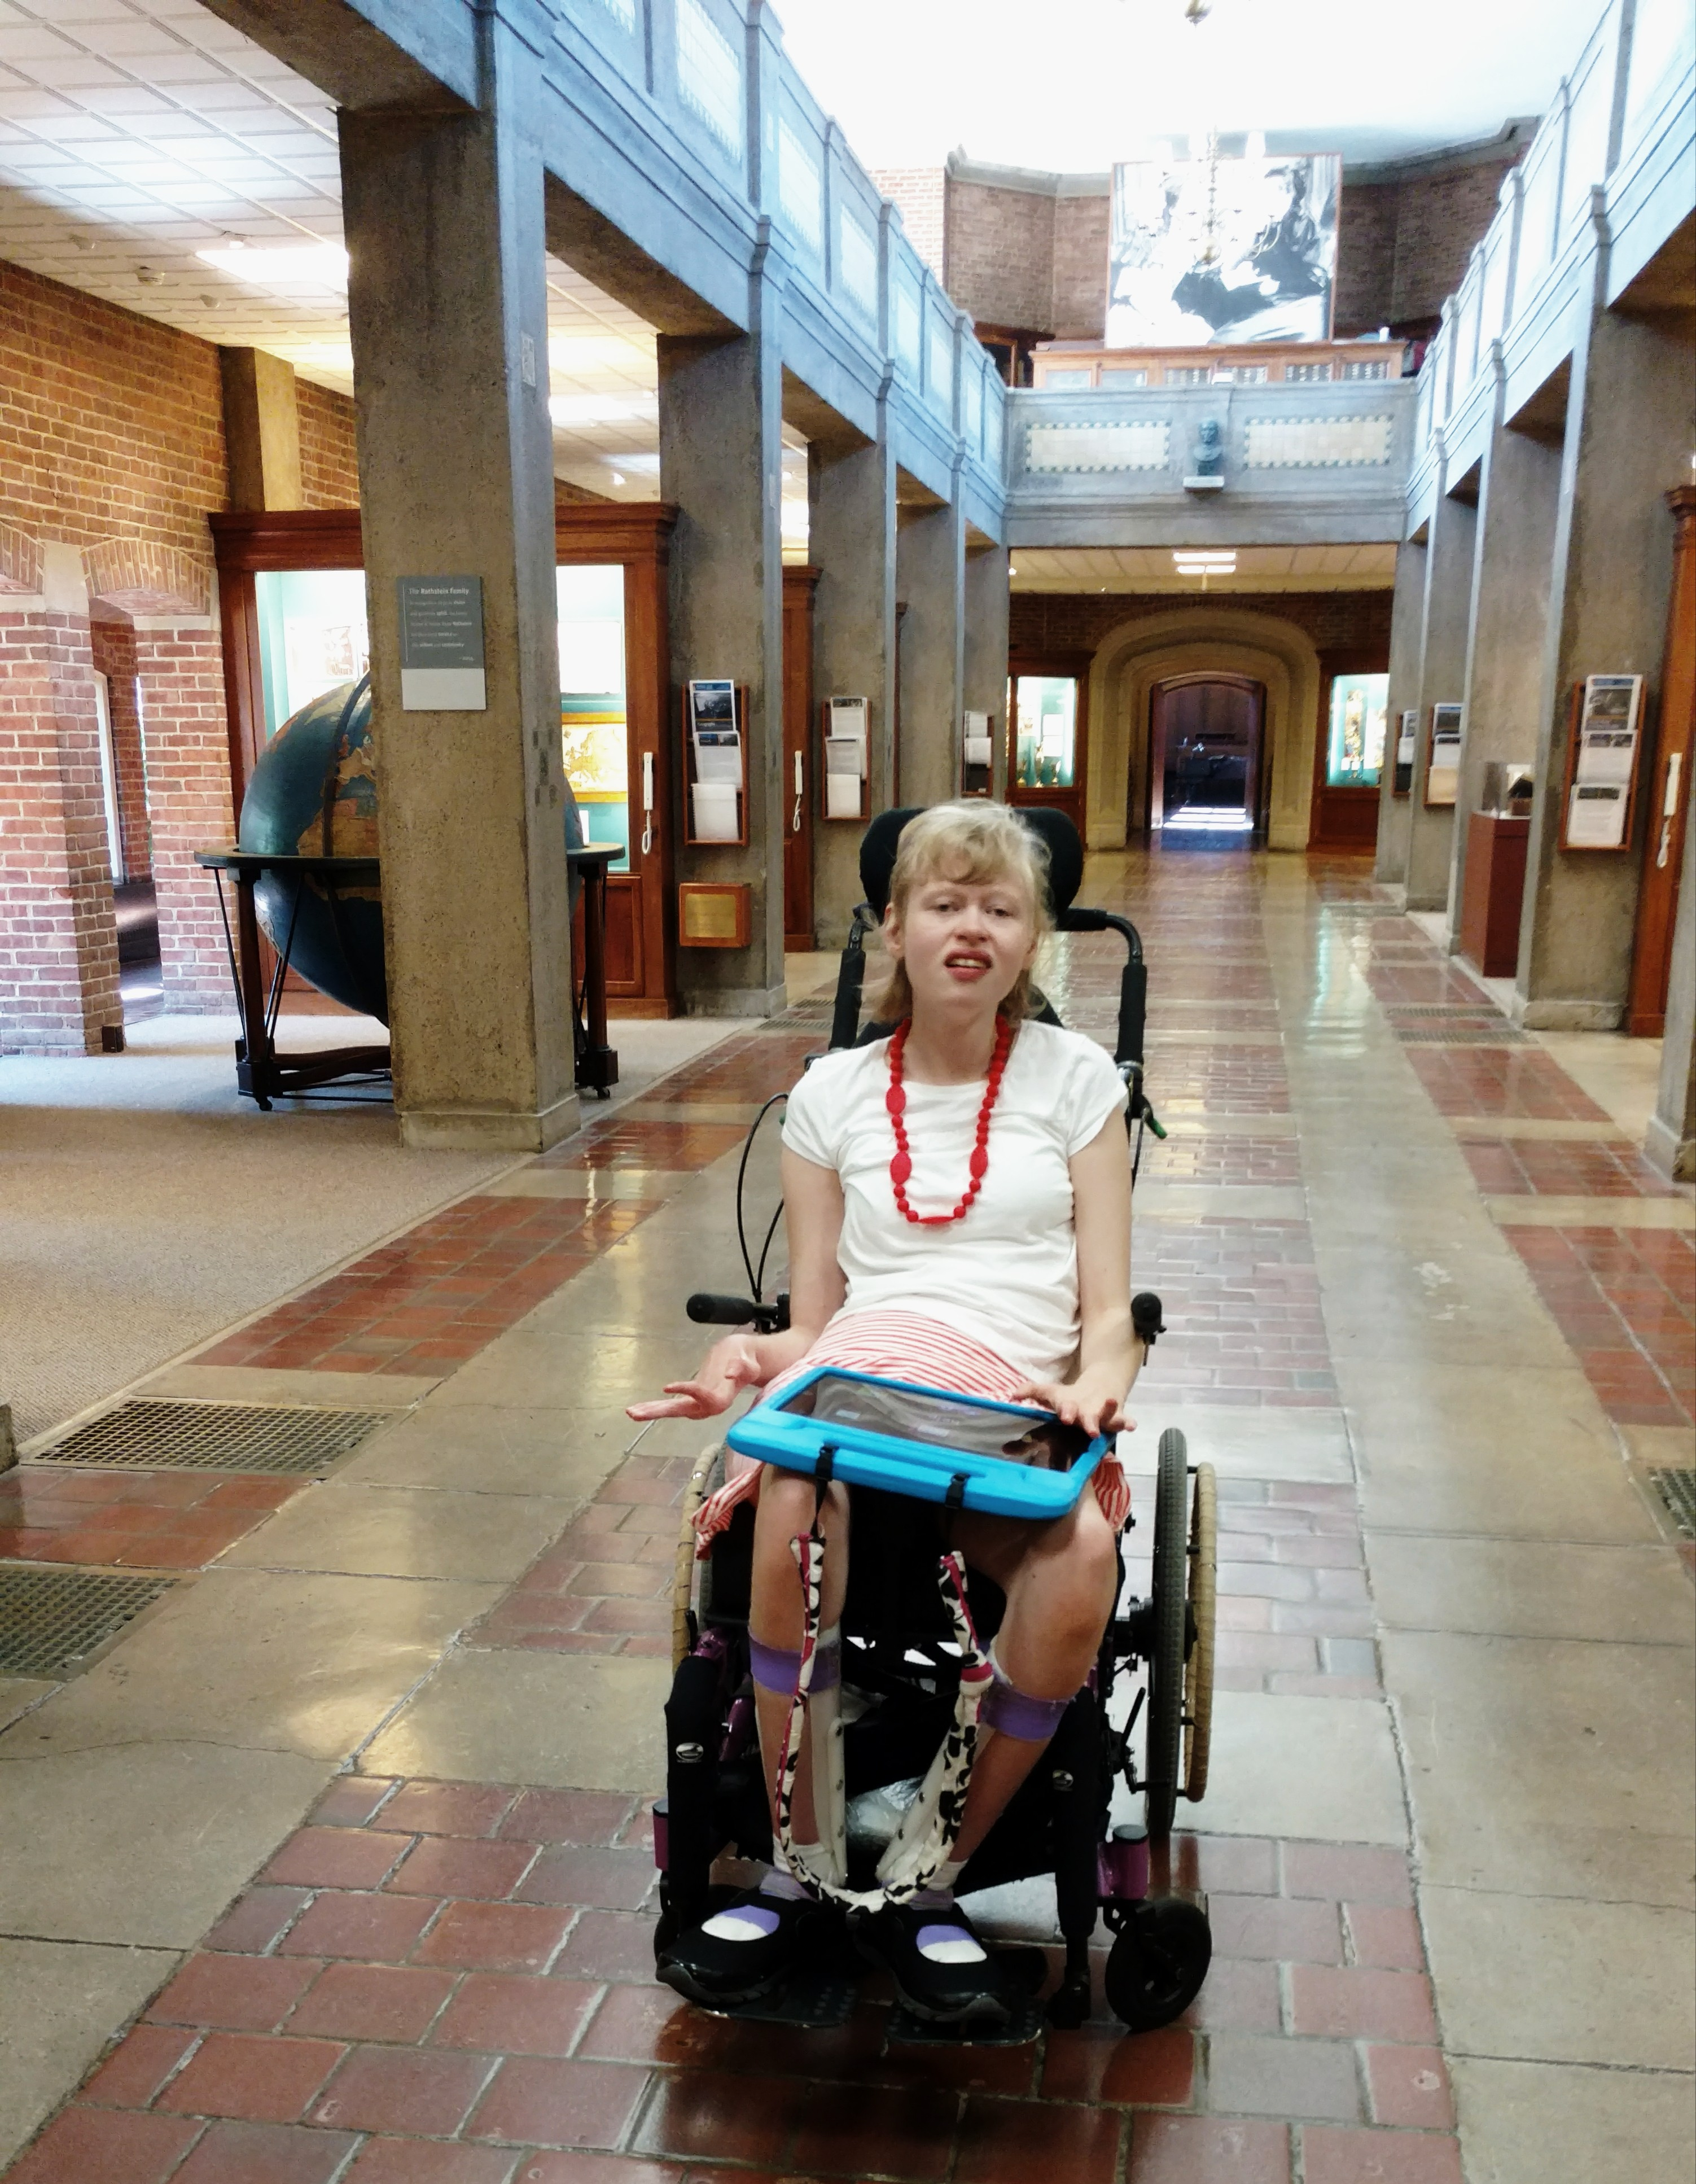 Emma sits in wheelchair with tablet on lap in corridor